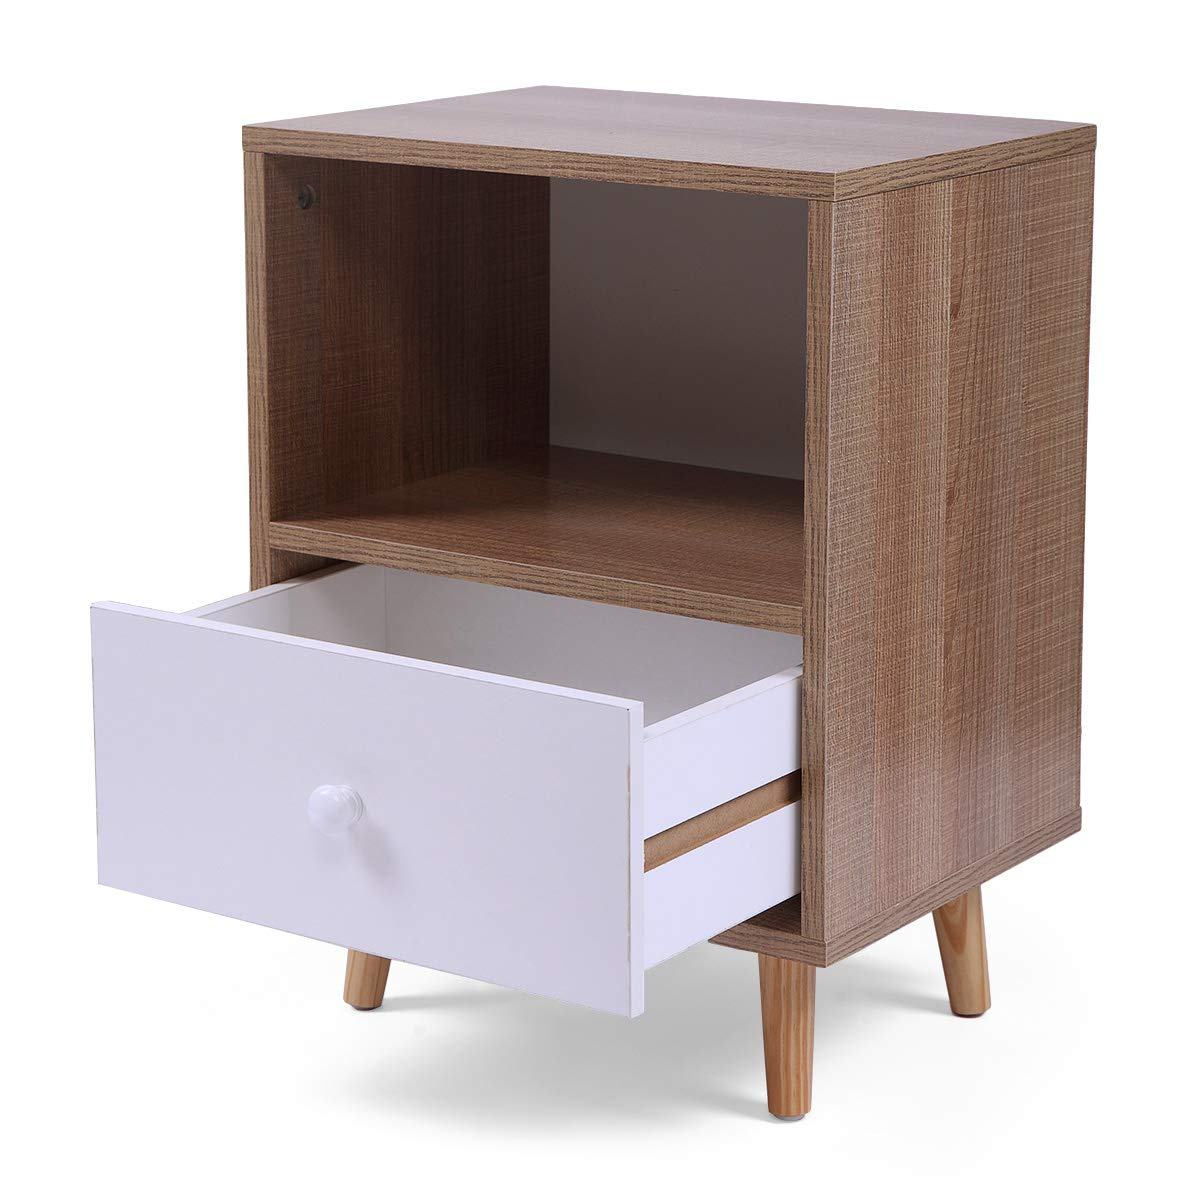 Set of 2 Night Stand 2 Layer w/Drawer Bedside End Table Organizer Bedroom by Betterhomechoice (Image #7)